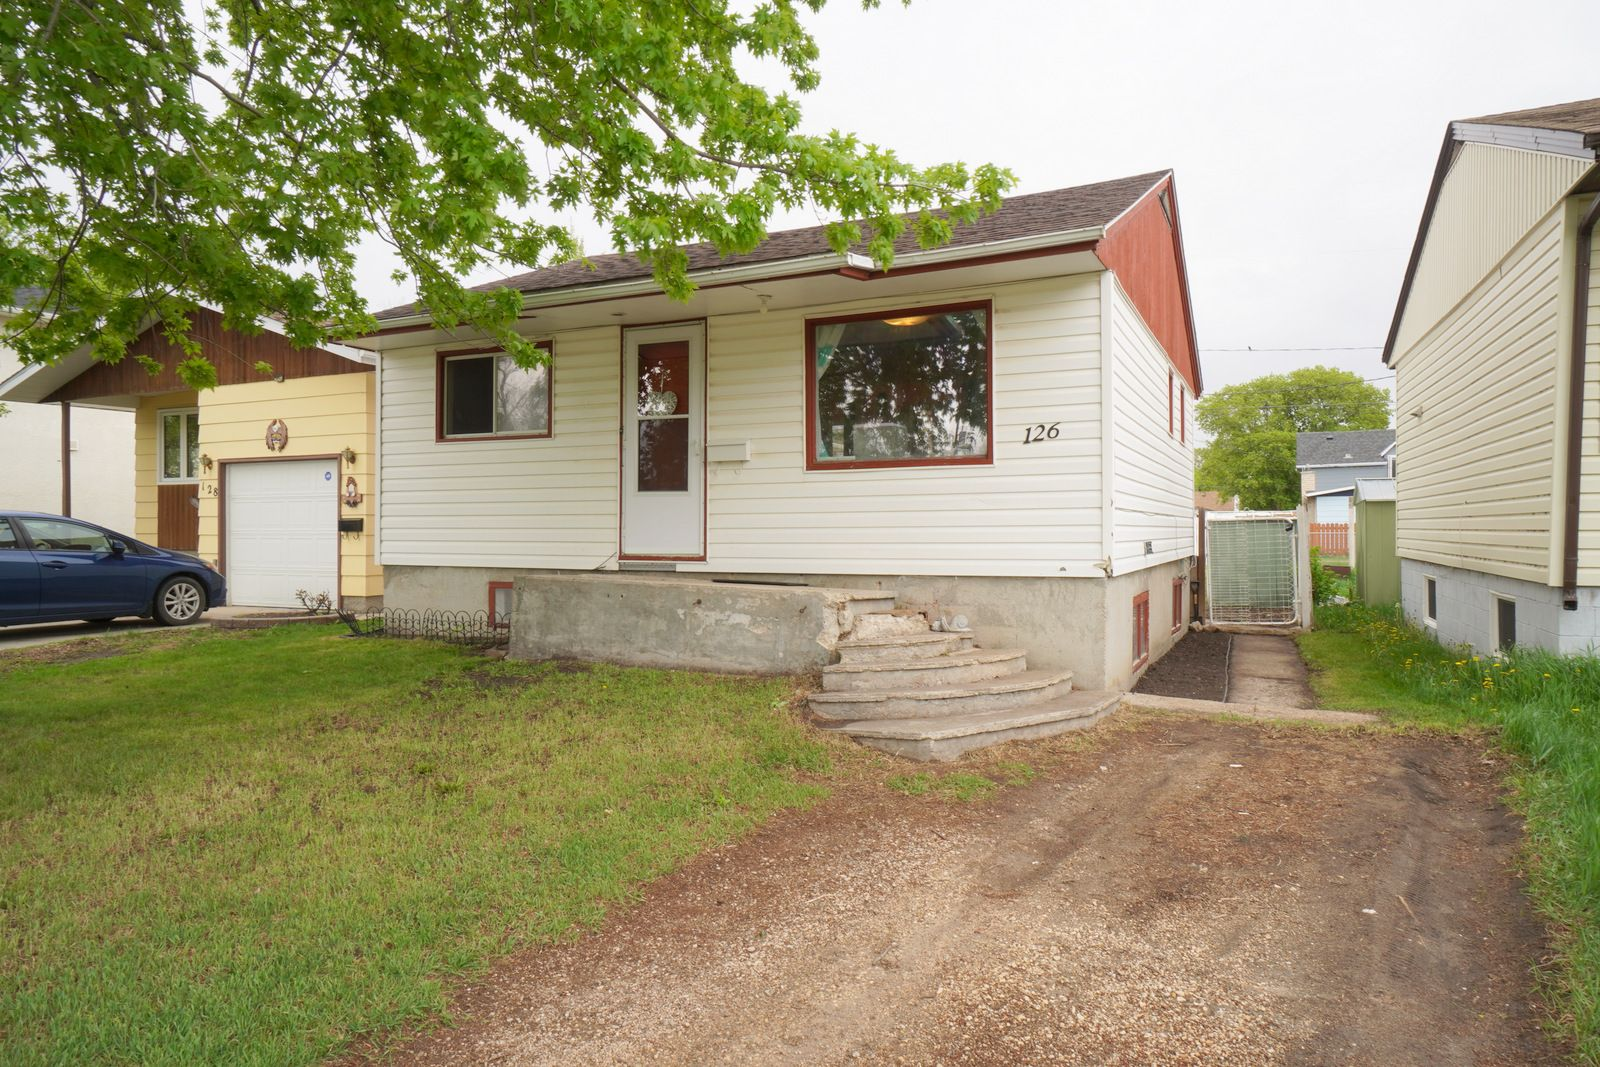 Main Photo: 126 12th Street NW in Portage la Prairie: House for sale : MLS®# 202112386